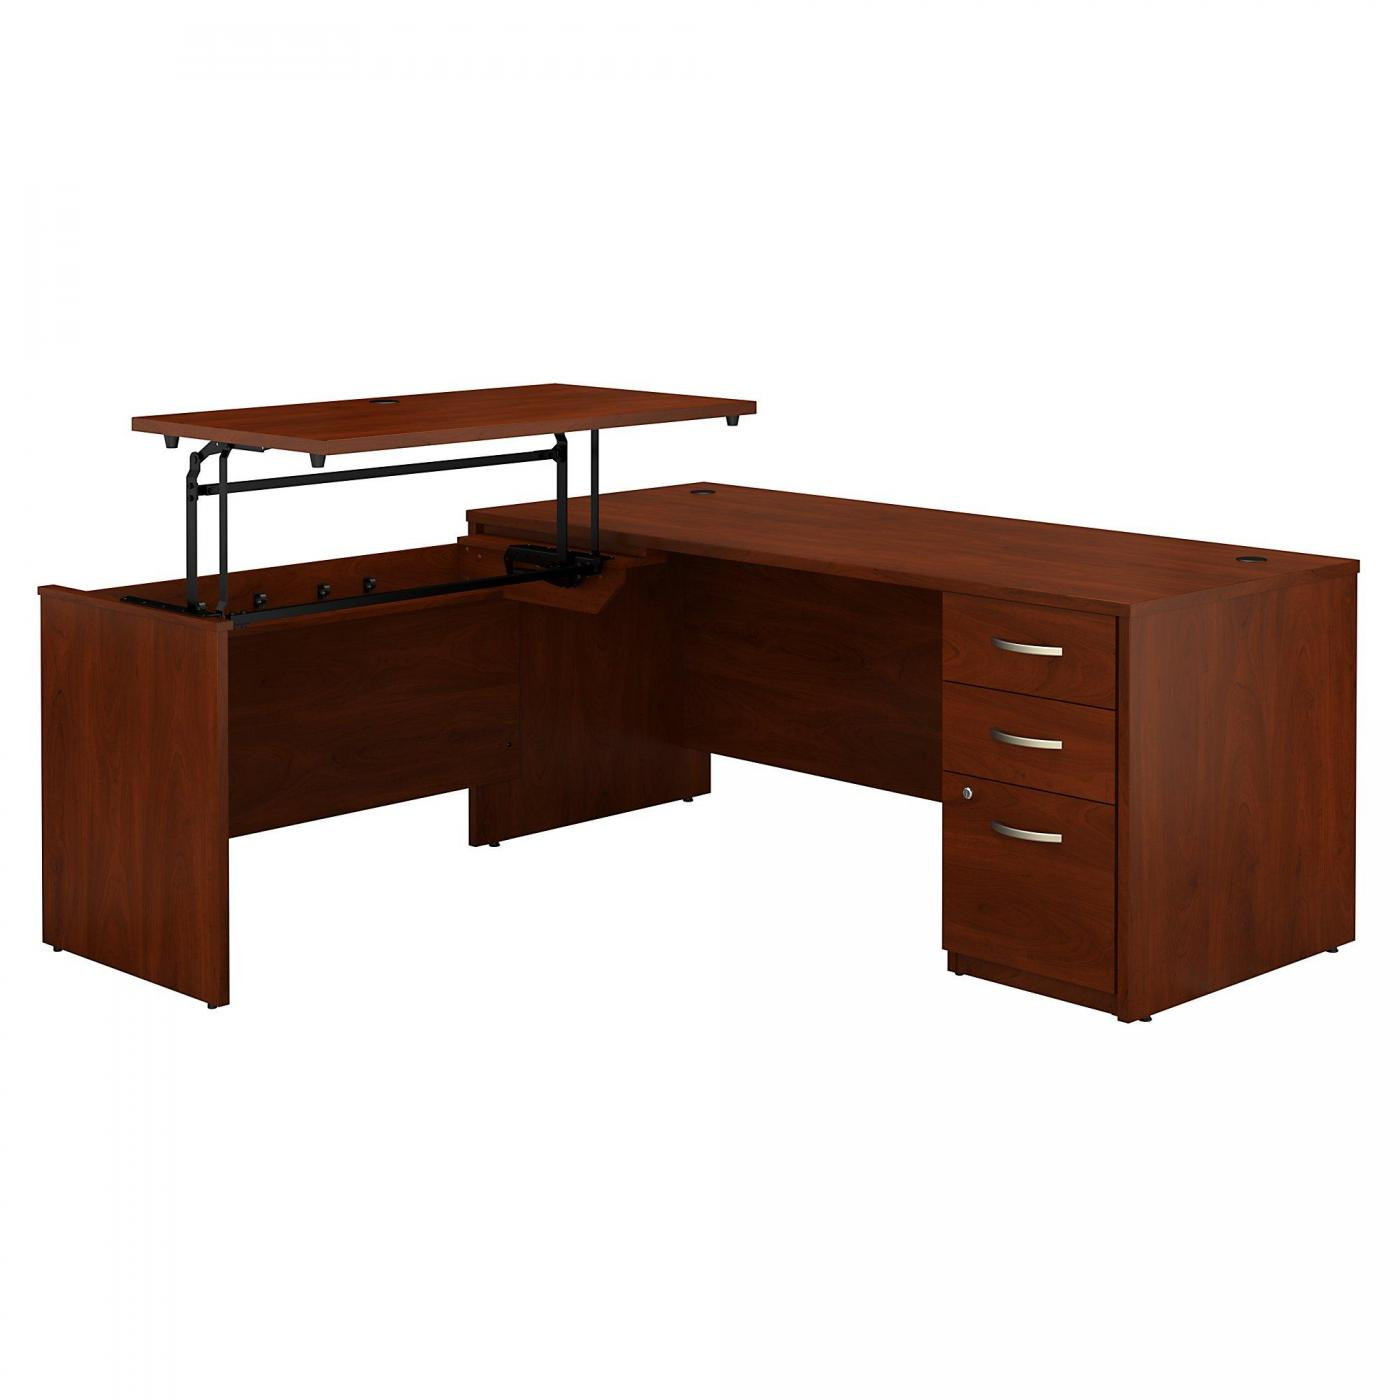 <font color=#c60><b>BUSH BUSINESS FURNITURE SERIES C ELITE 72W X 30D 3 POSITION SIT TO STAND L SHAPED DESK WITH 3 DRAWER FILE CABINET. FREE SHIPPING. VIDEO:</font></b>